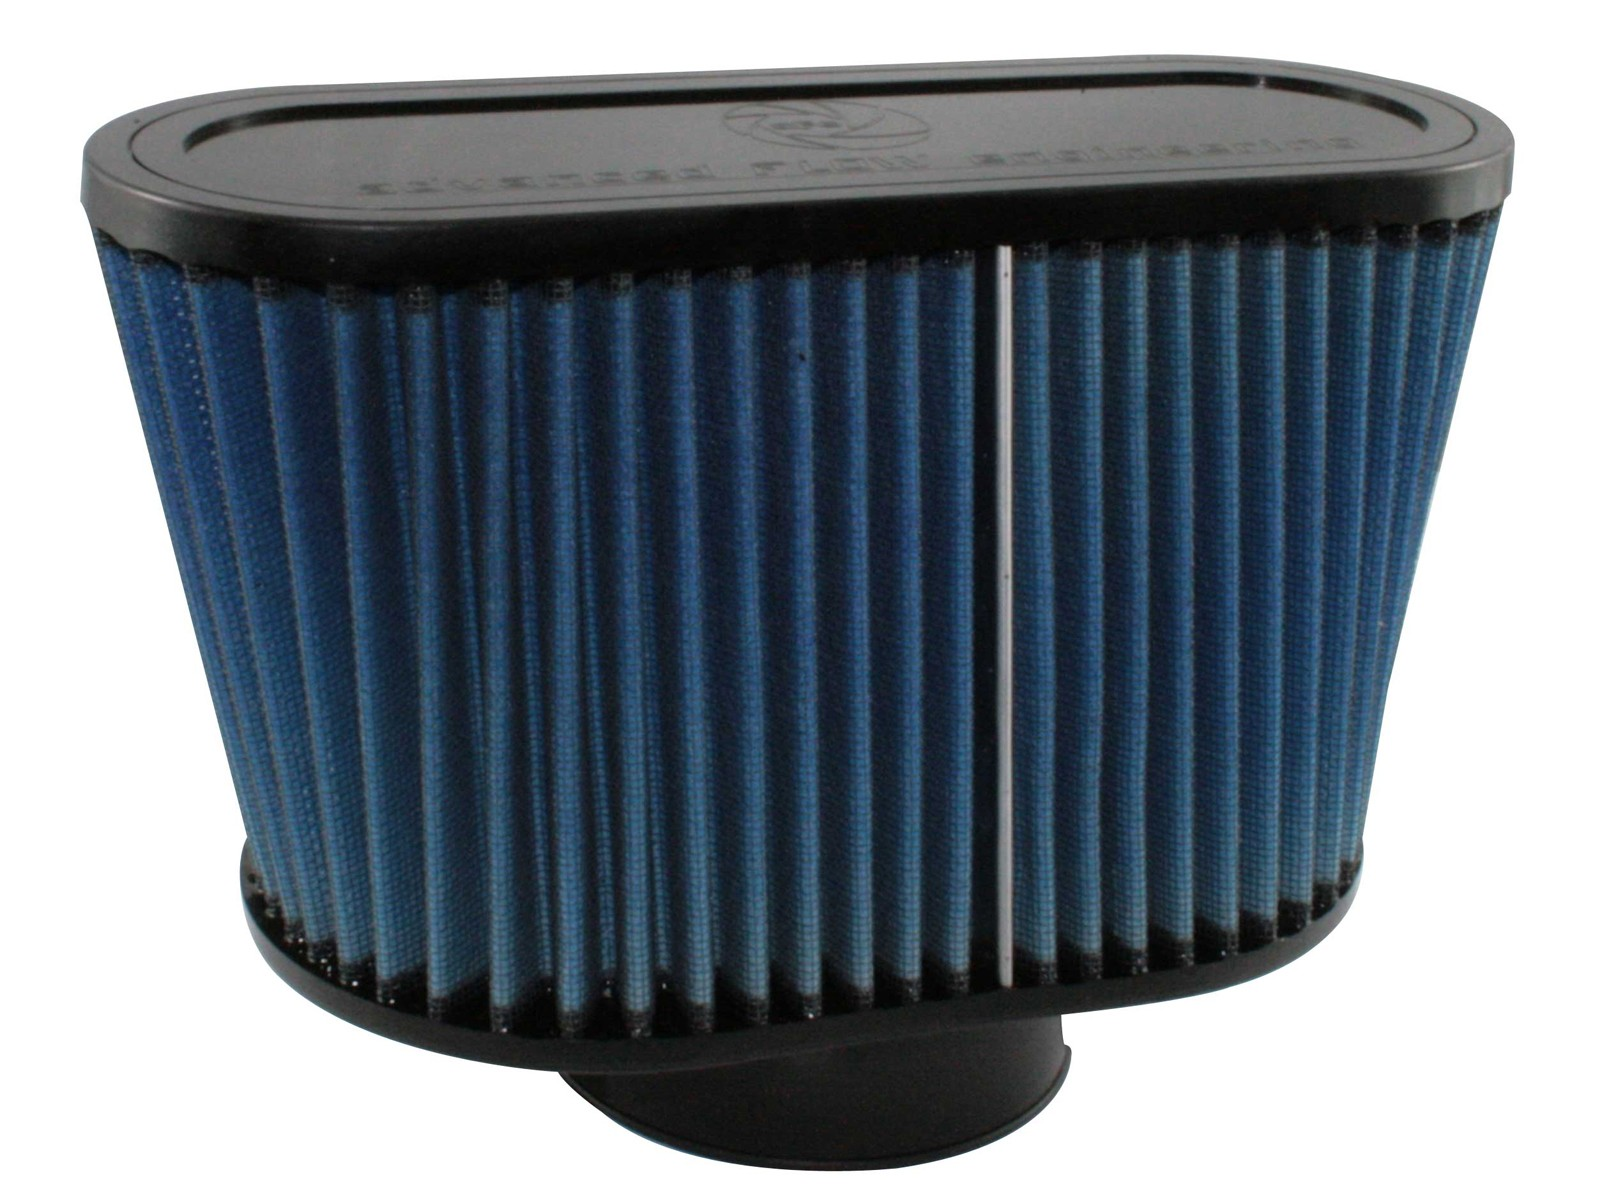 aFe POWER 24-90024 Magnum FLOW Pro 5R Air Filter